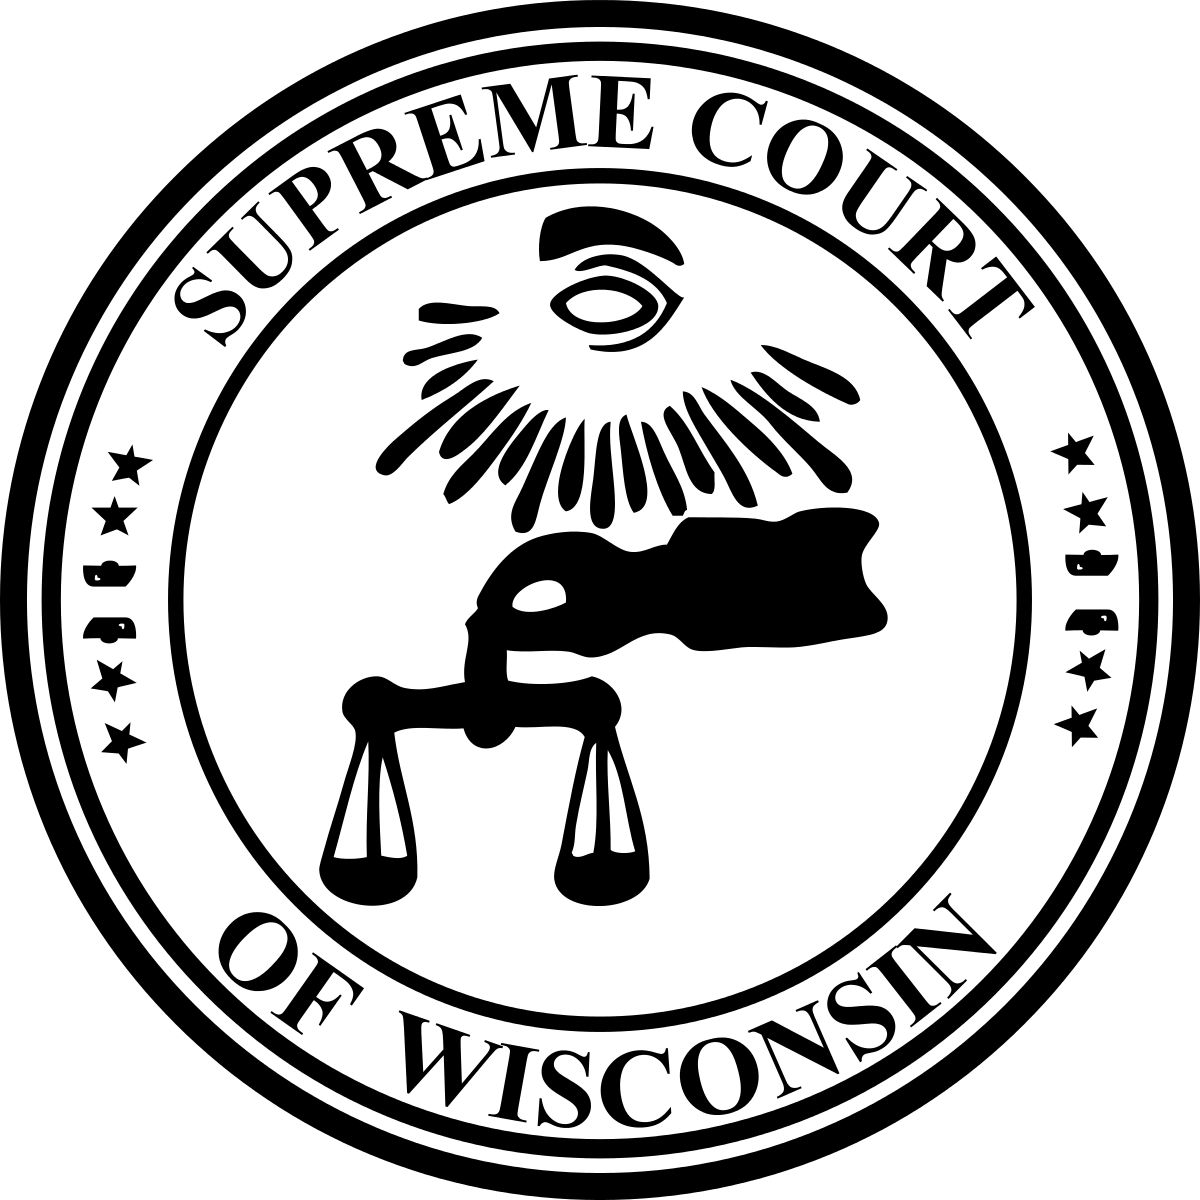 Supreme court house clipart vector transparent Supreme Court Drawing at GetDrawings.com | Free for personal use ... vector transparent